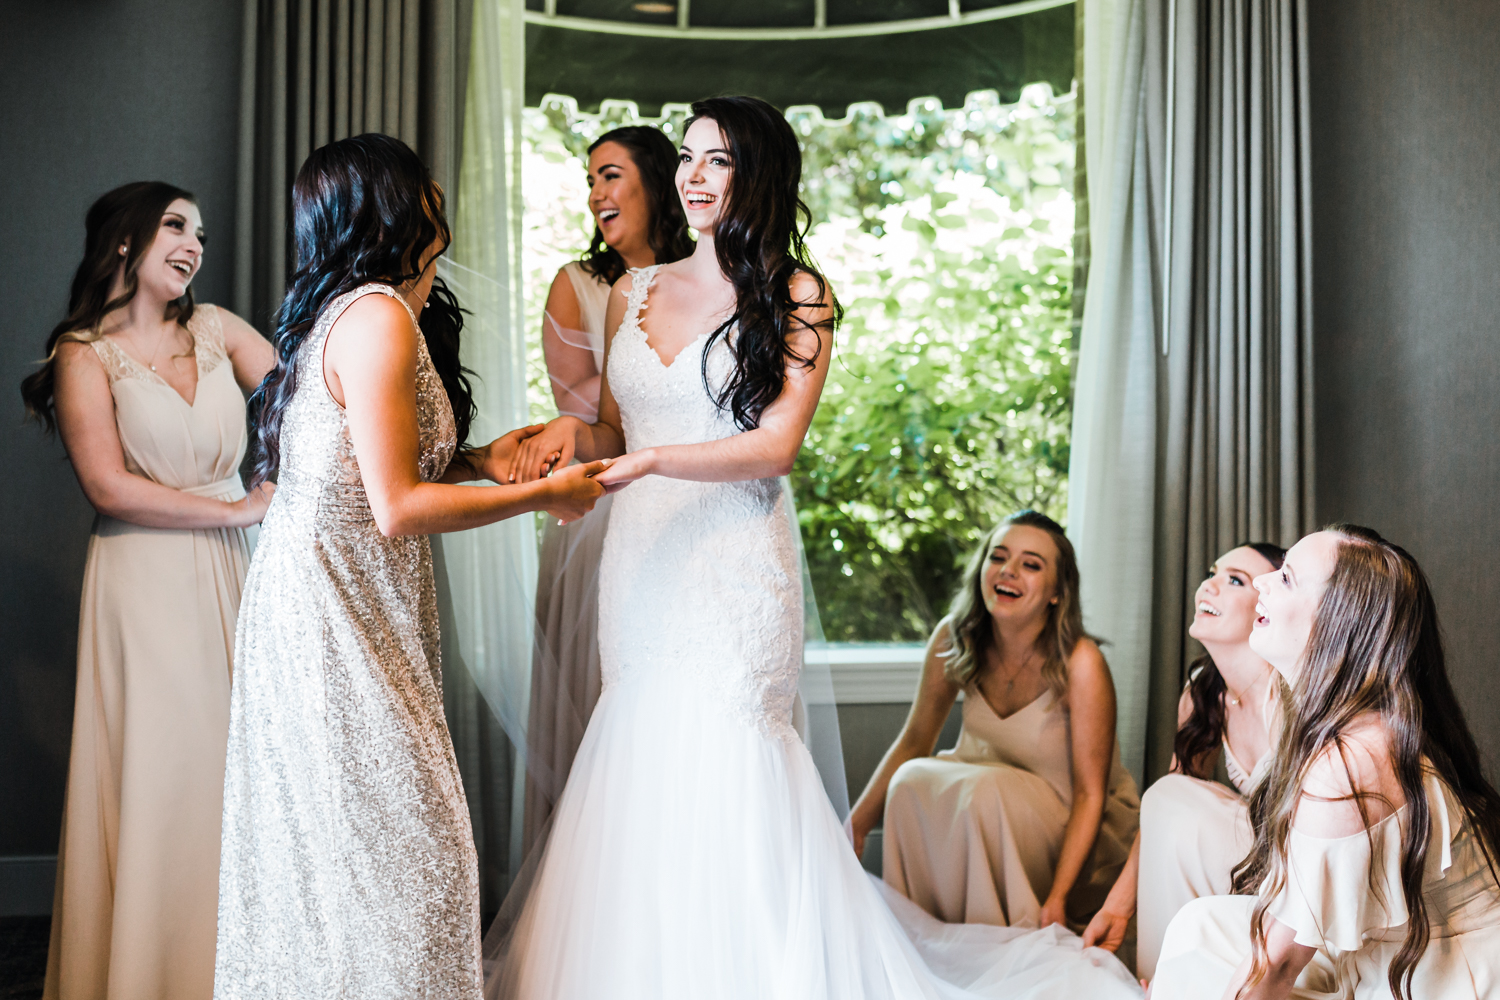 bride laughing with her bridesmaids as they get ready - Annapolis Maryland waterfront wedding veues